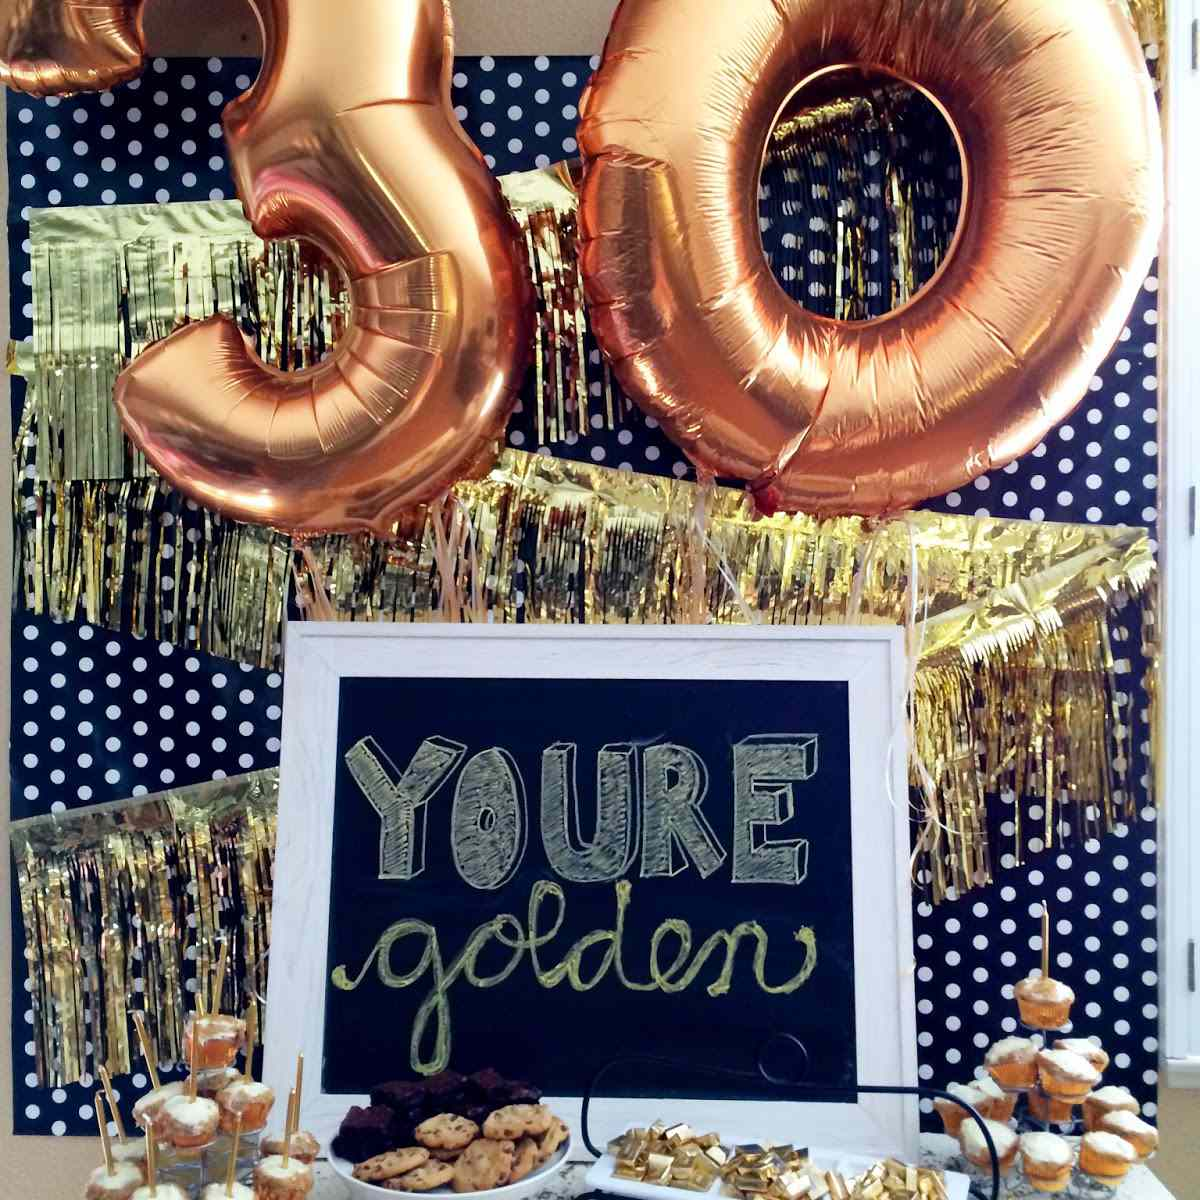 30th birthday for her year you were born milestone birthday 30th birthday party ideas birthday party decorations 30th birthday gift